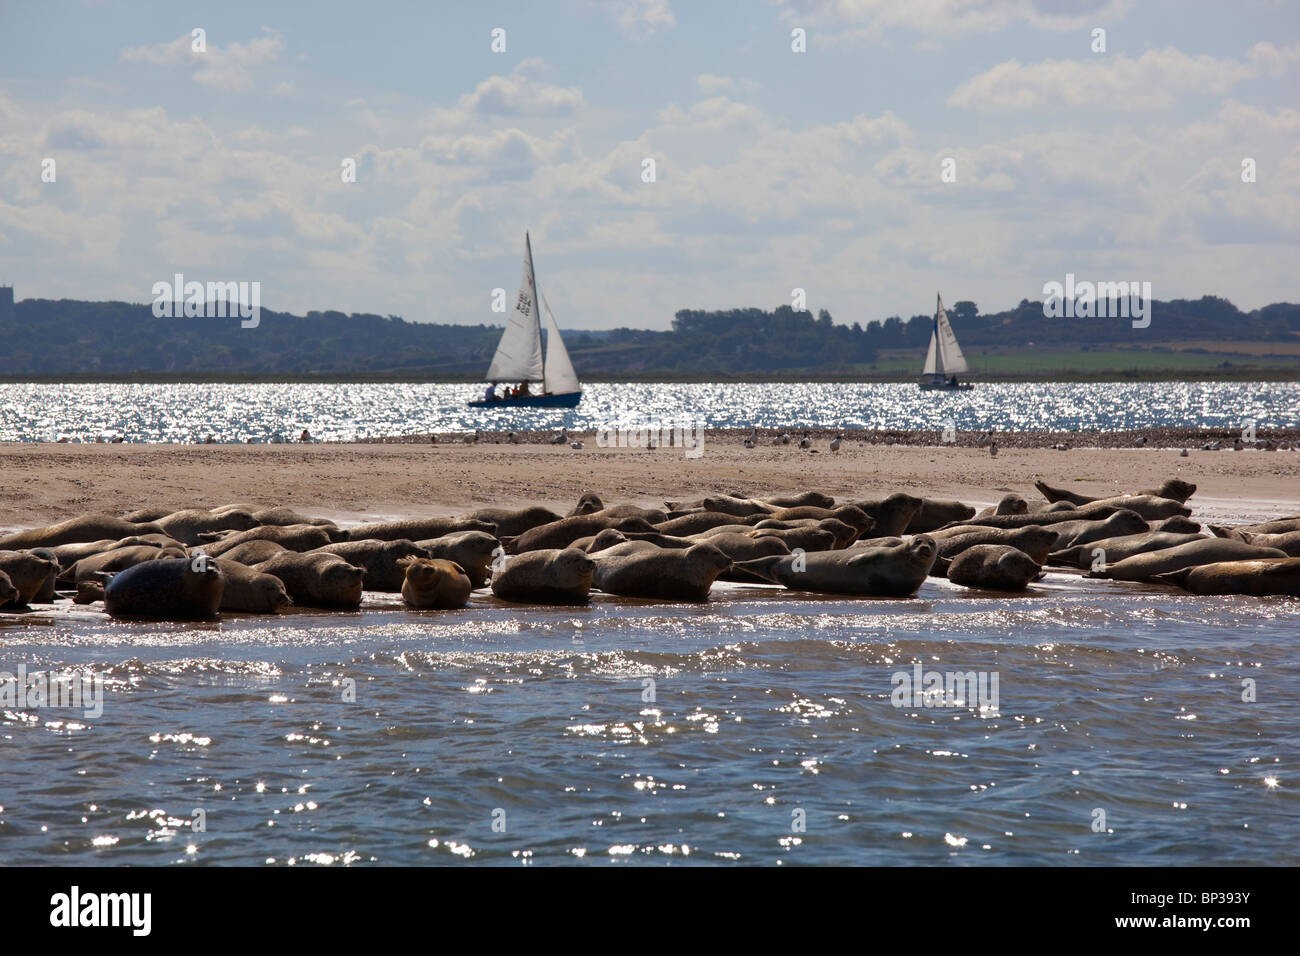 Seal colony at Blakeney Point, Norfolk, England - Stock Image